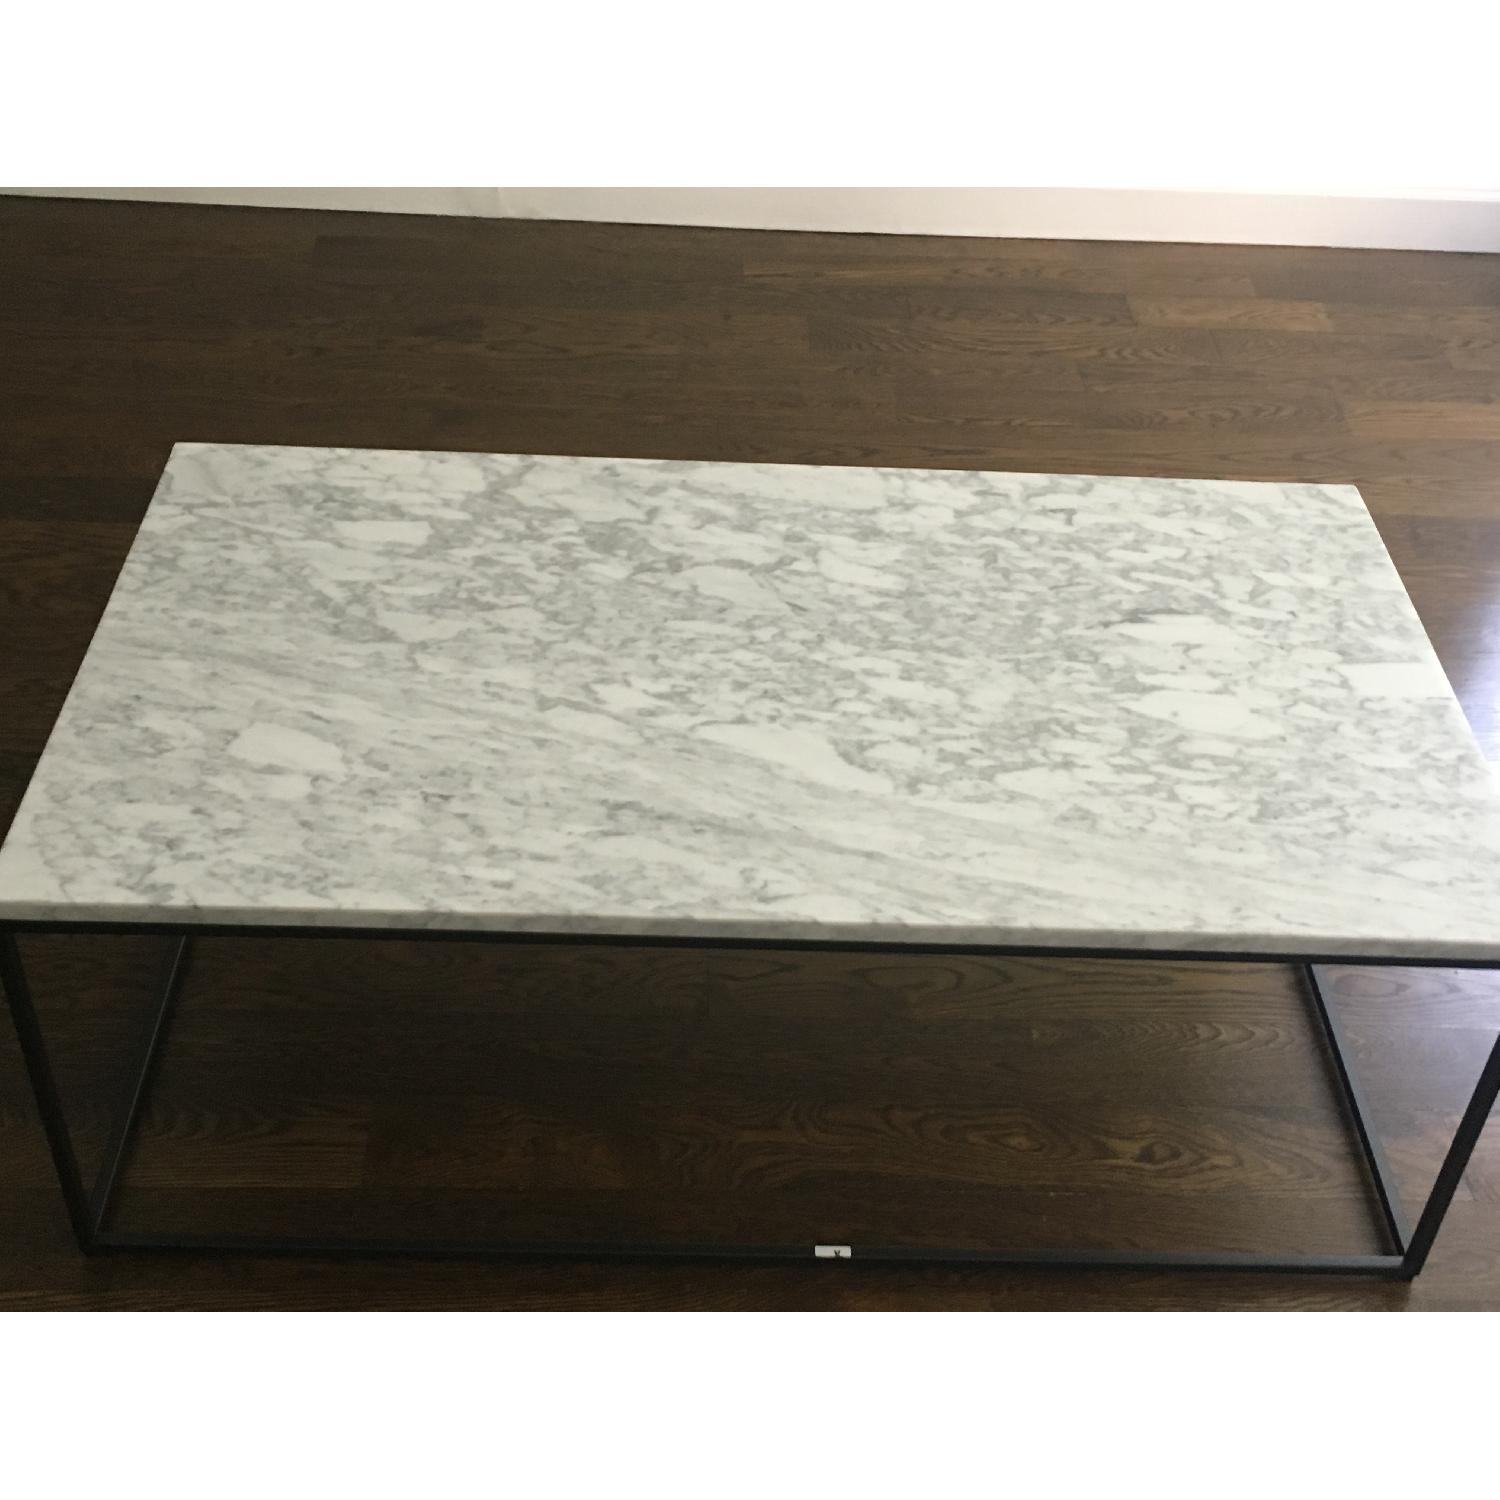 Prime West Elm Streamline Coffee Table In White Marble Aptdeco Caraccident5 Cool Chair Designs And Ideas Caraccident5Info